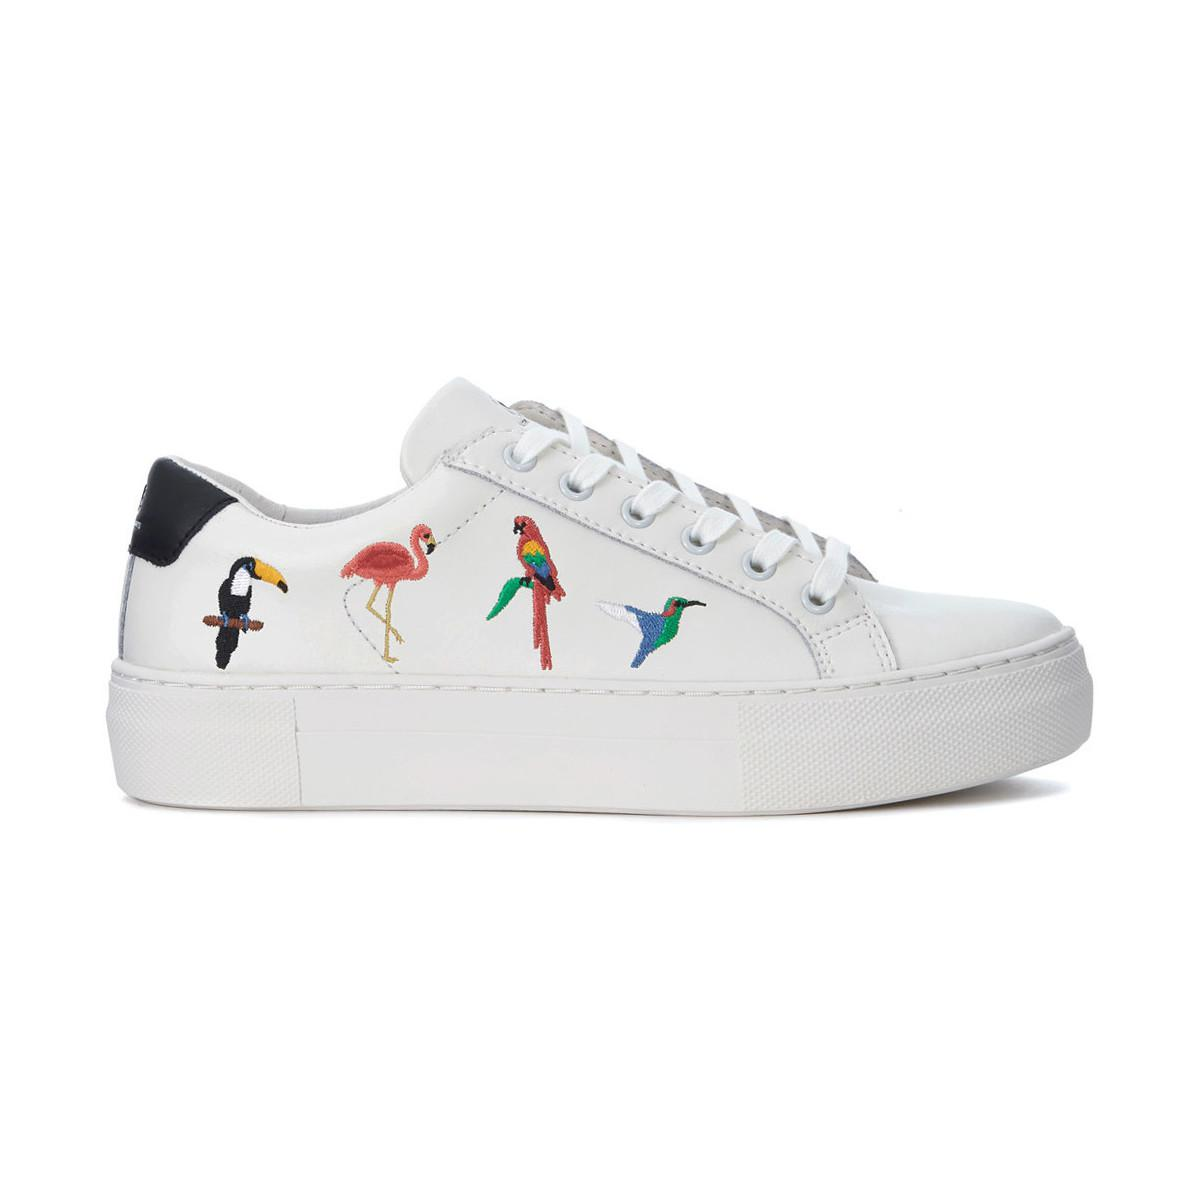 46c80400c97 MOA Moa Tropical White Leather Sneaker With Tropical Birds Women's ...